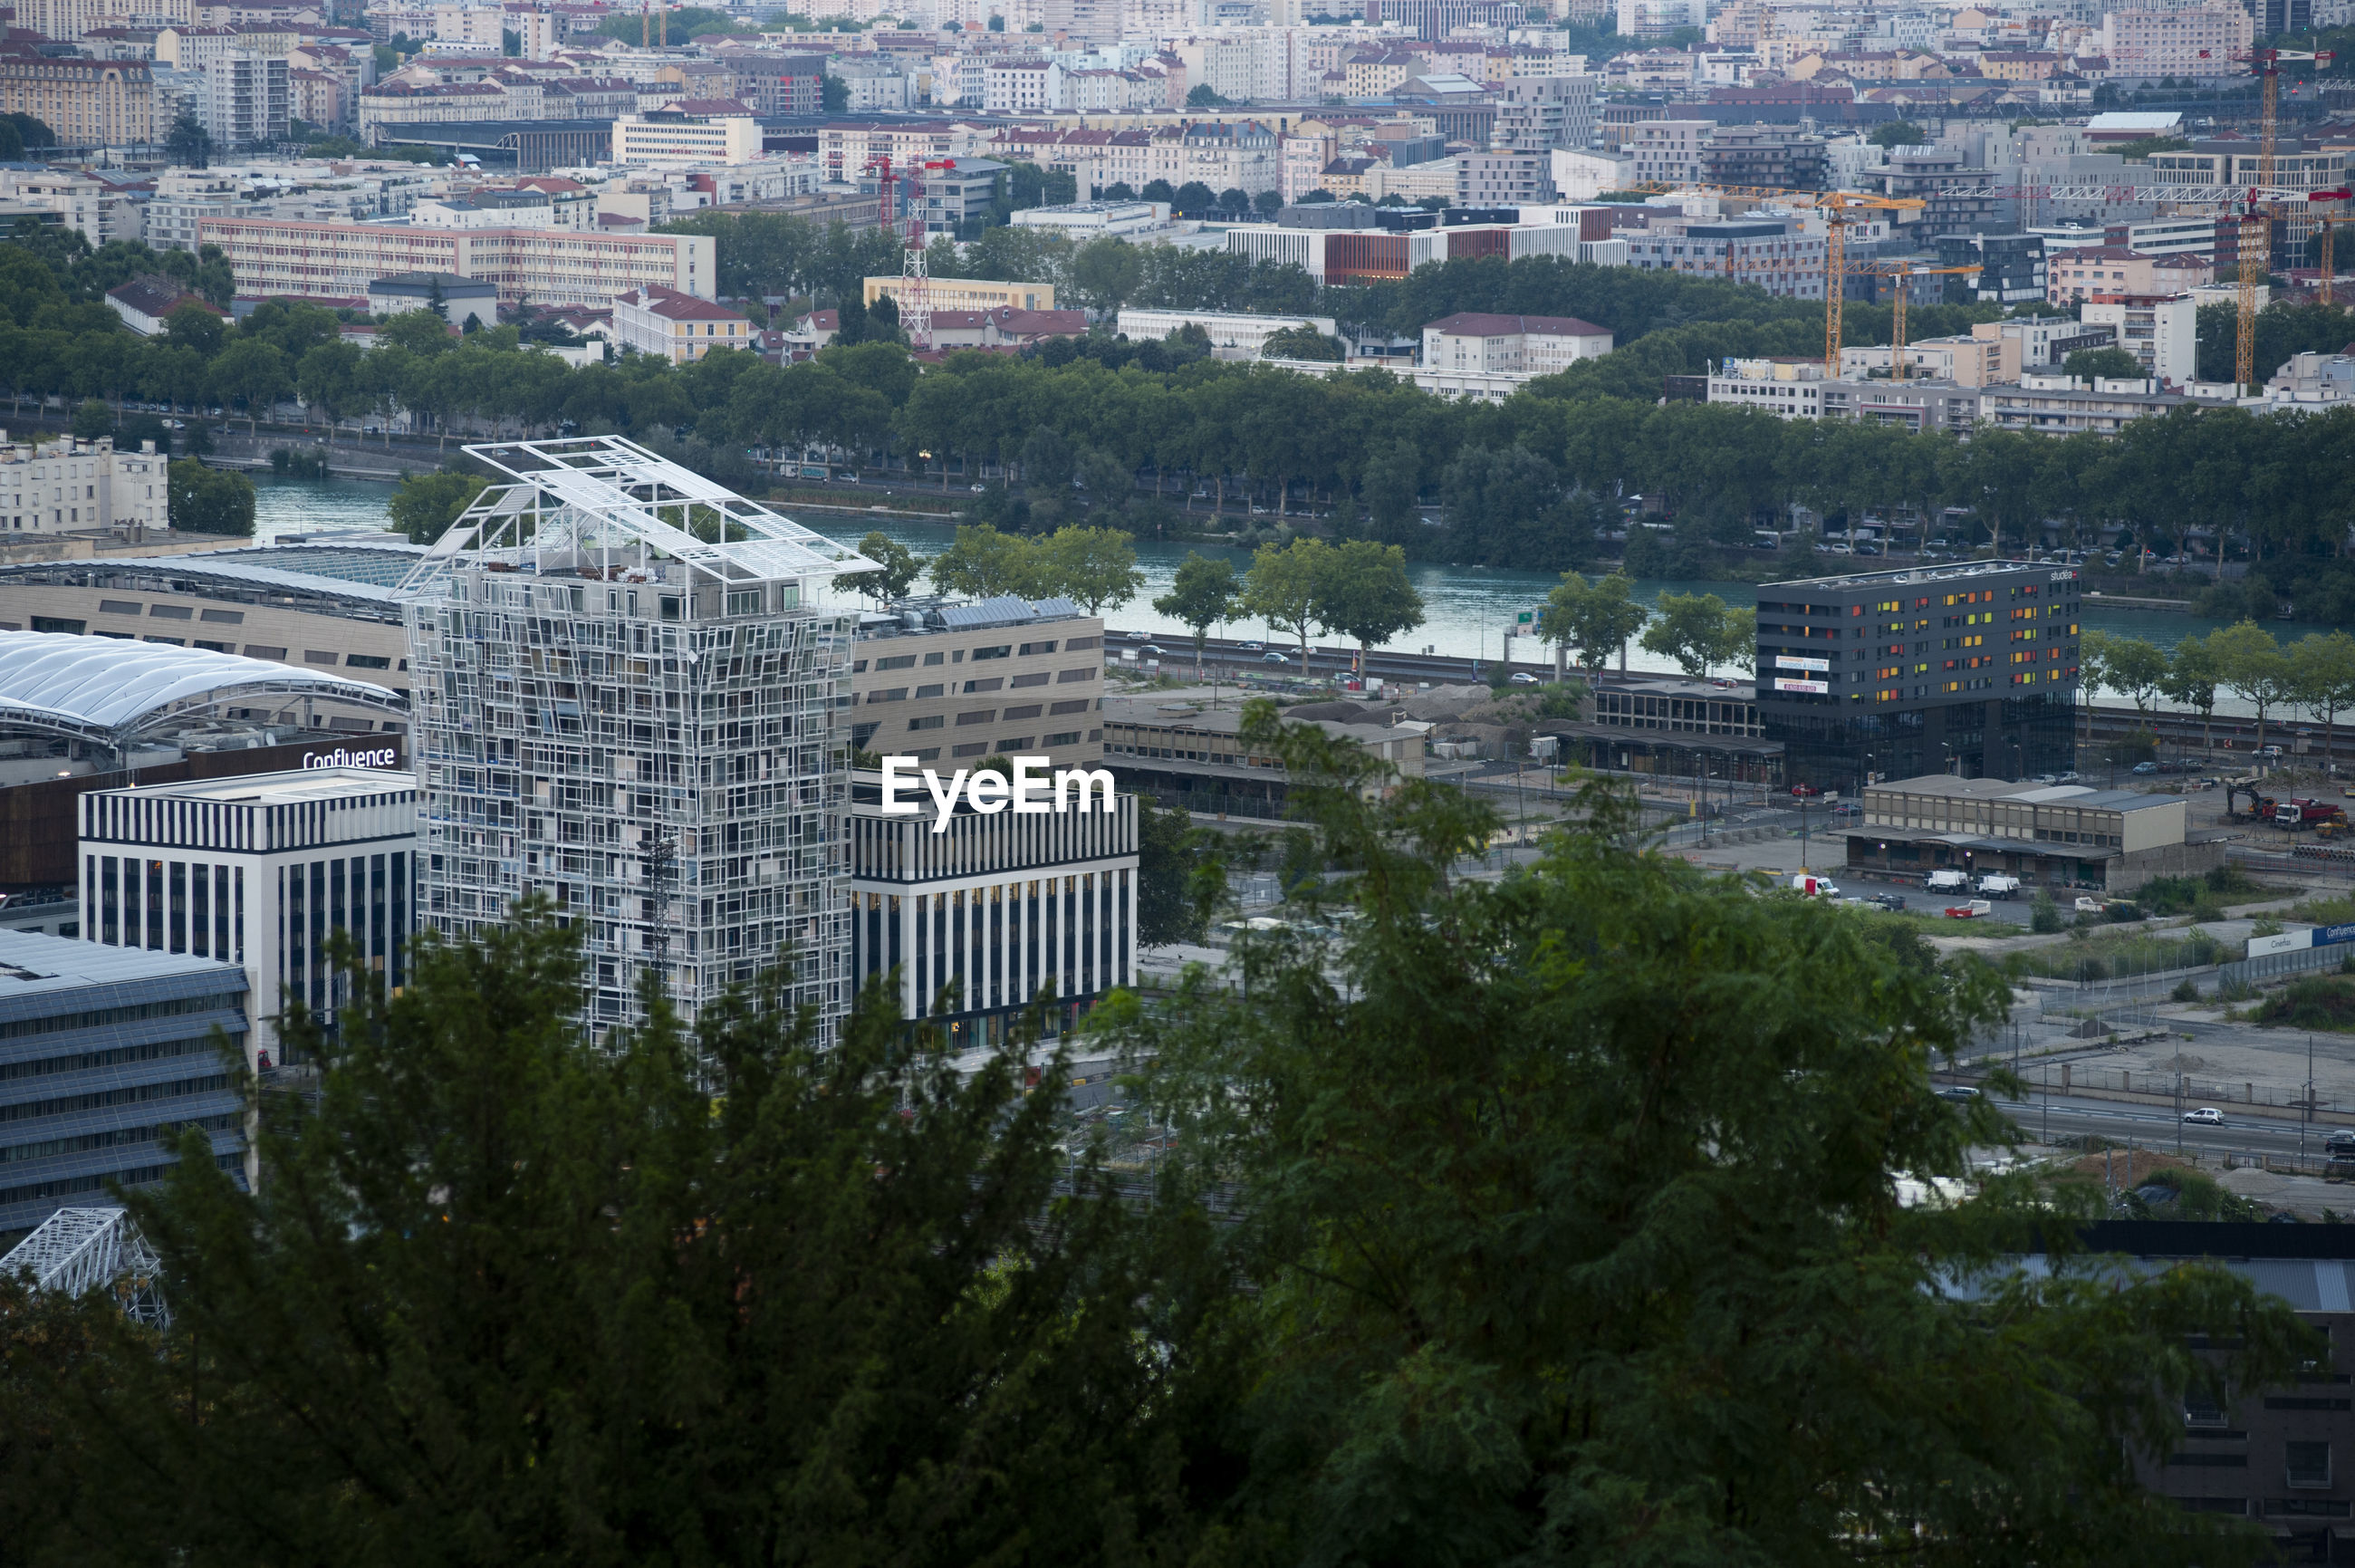 HIGH ANGLE VIEW OF BUILDINGS AND TREES IN CITY